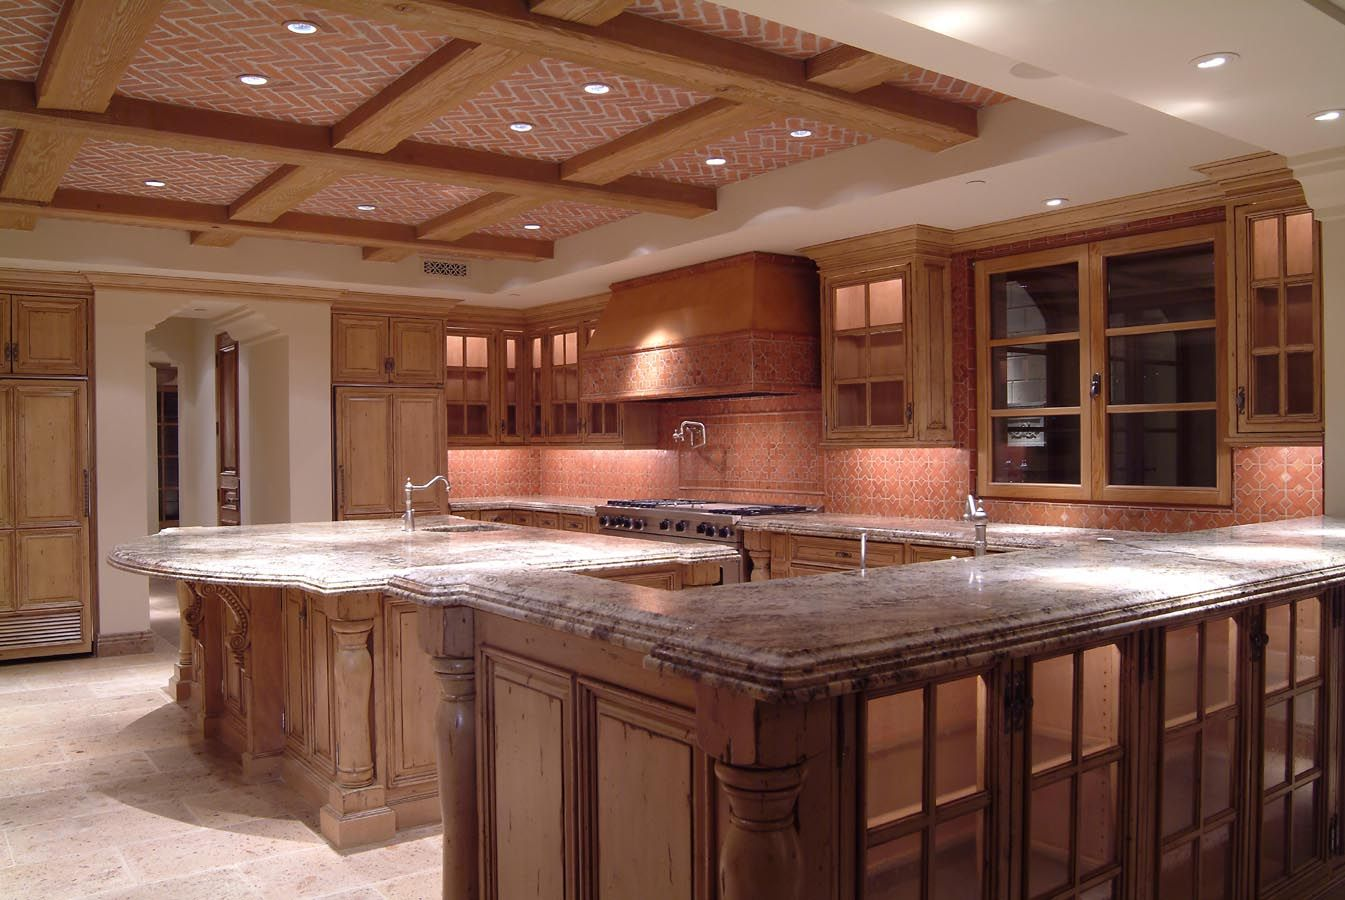 Ultra High-End Custom Kitchen Cabinetry | high end ...